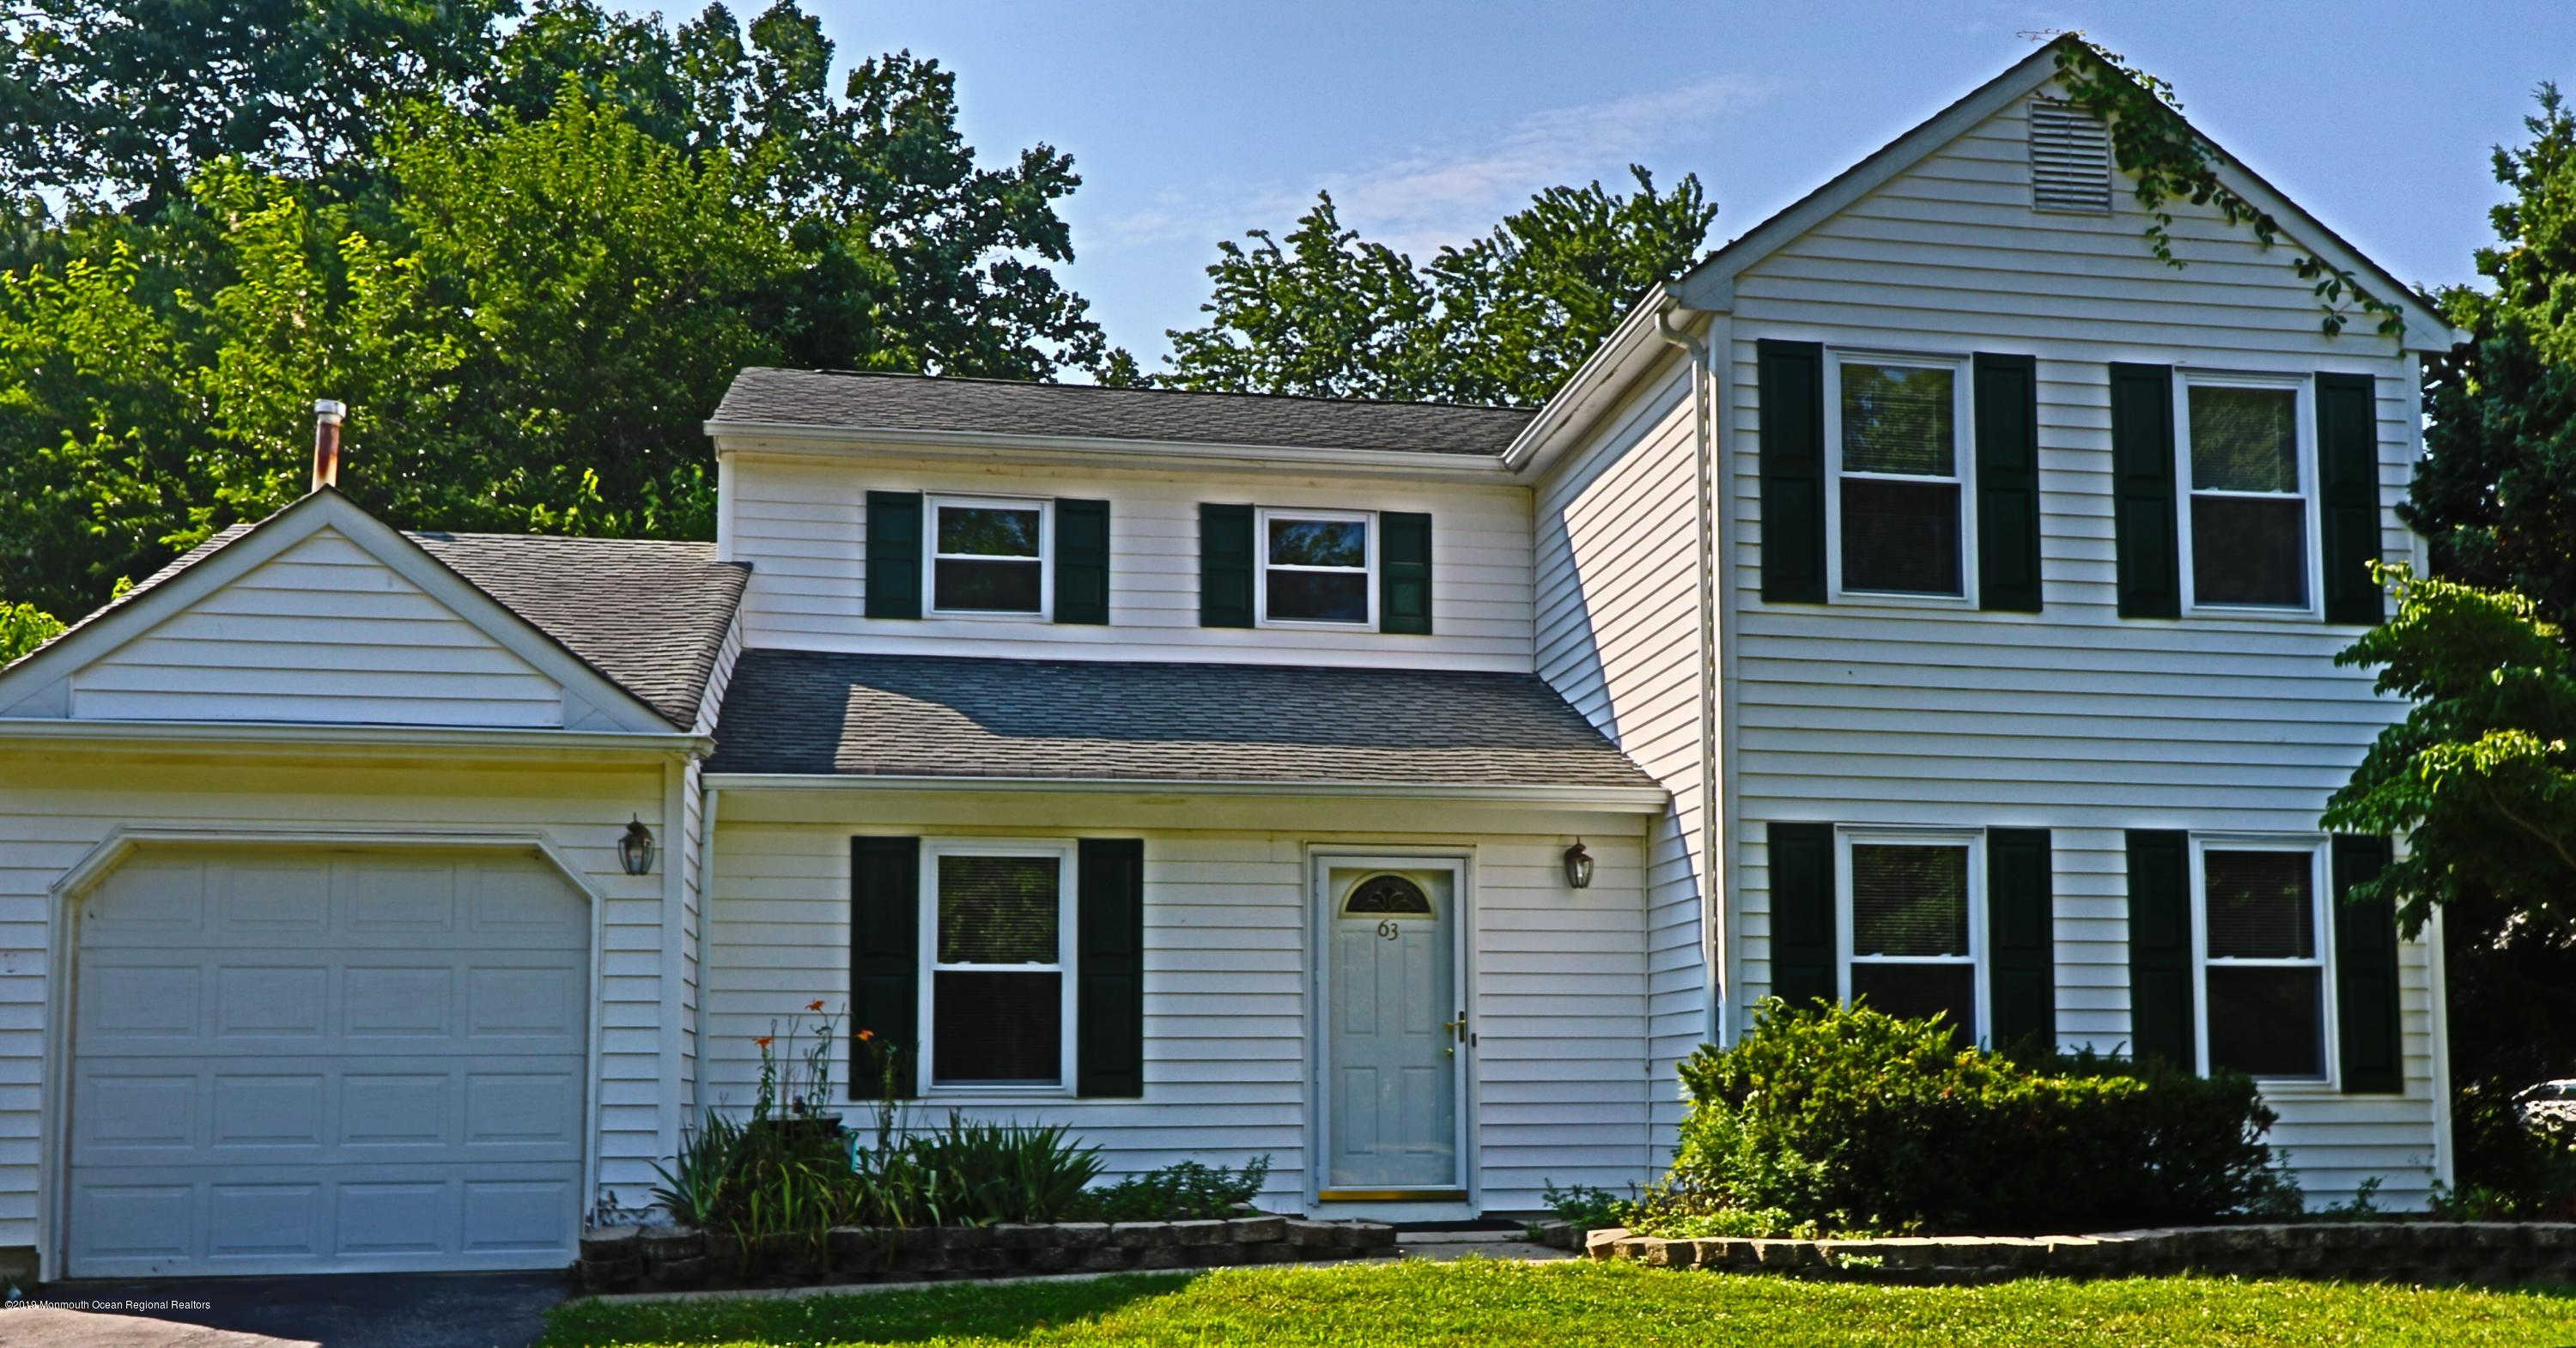 Another Property Sold - 63 Mariners Cv, Freehold twp (fre), NJ 07728